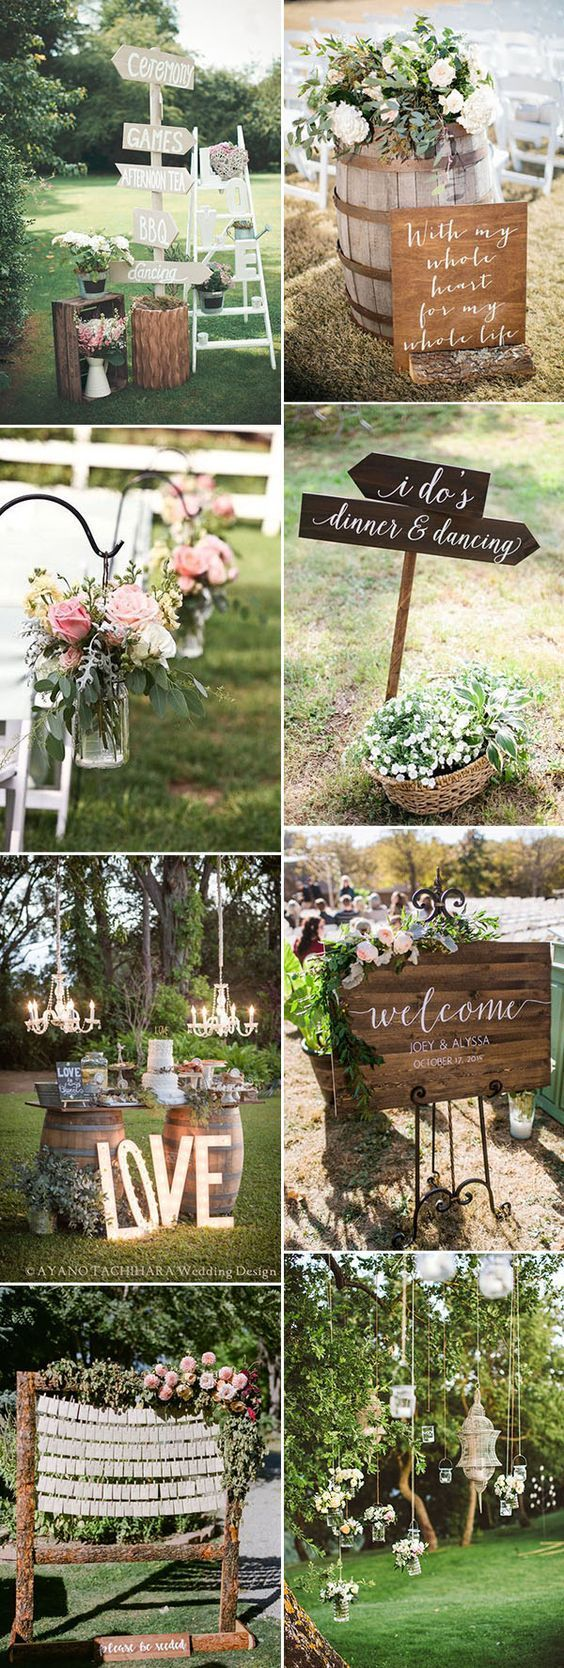 Amazing garden wedding decor ideas that are easy to diy outdoor